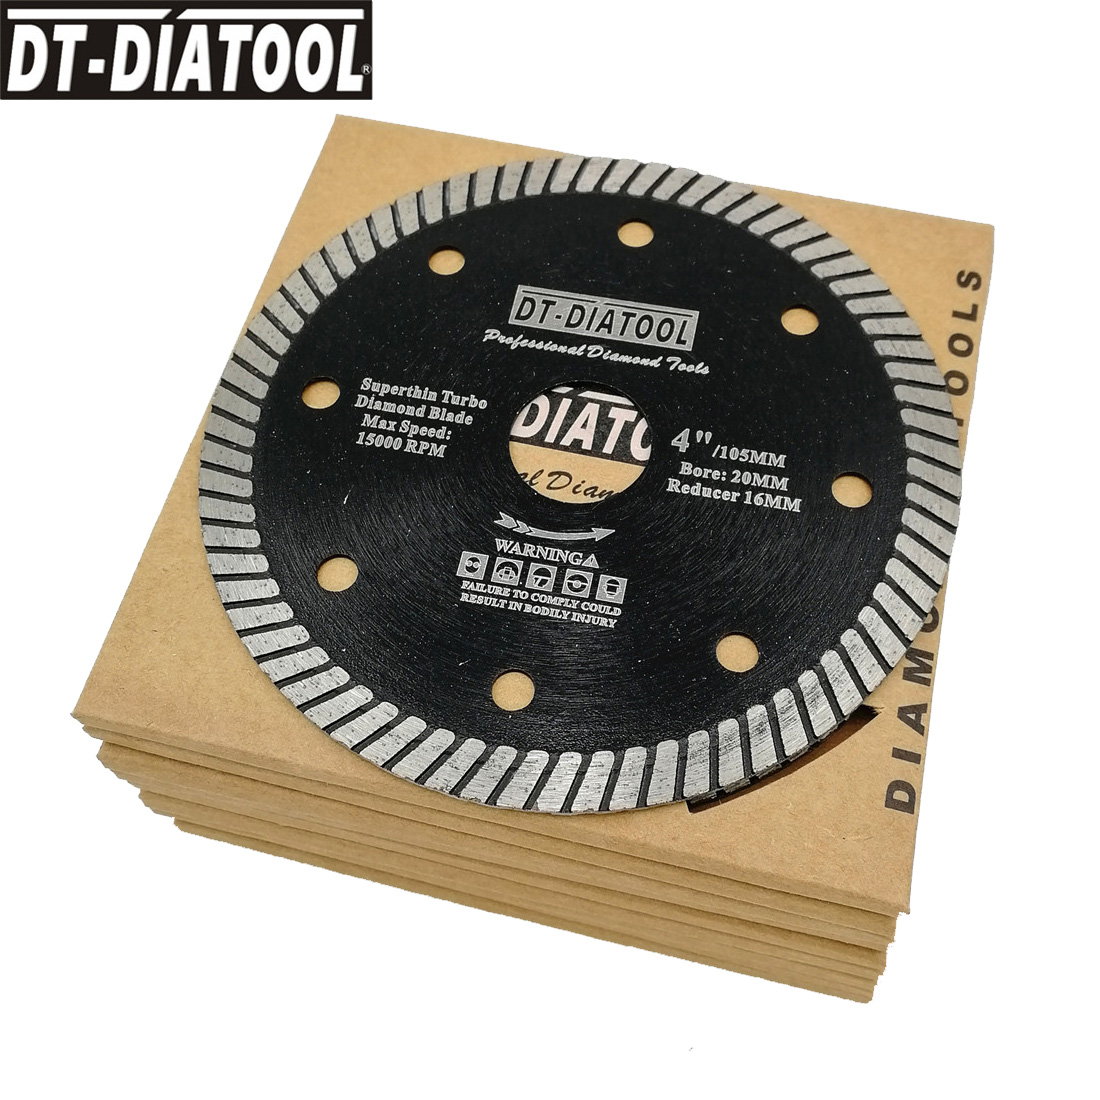 DT-DIATOOL 10pcs/pk Dia 105mm/4inch Diamond Super Thin Saw Blades Dry Or Wet Cutting Disc For Ceramic Tile Granite Bore 20mm